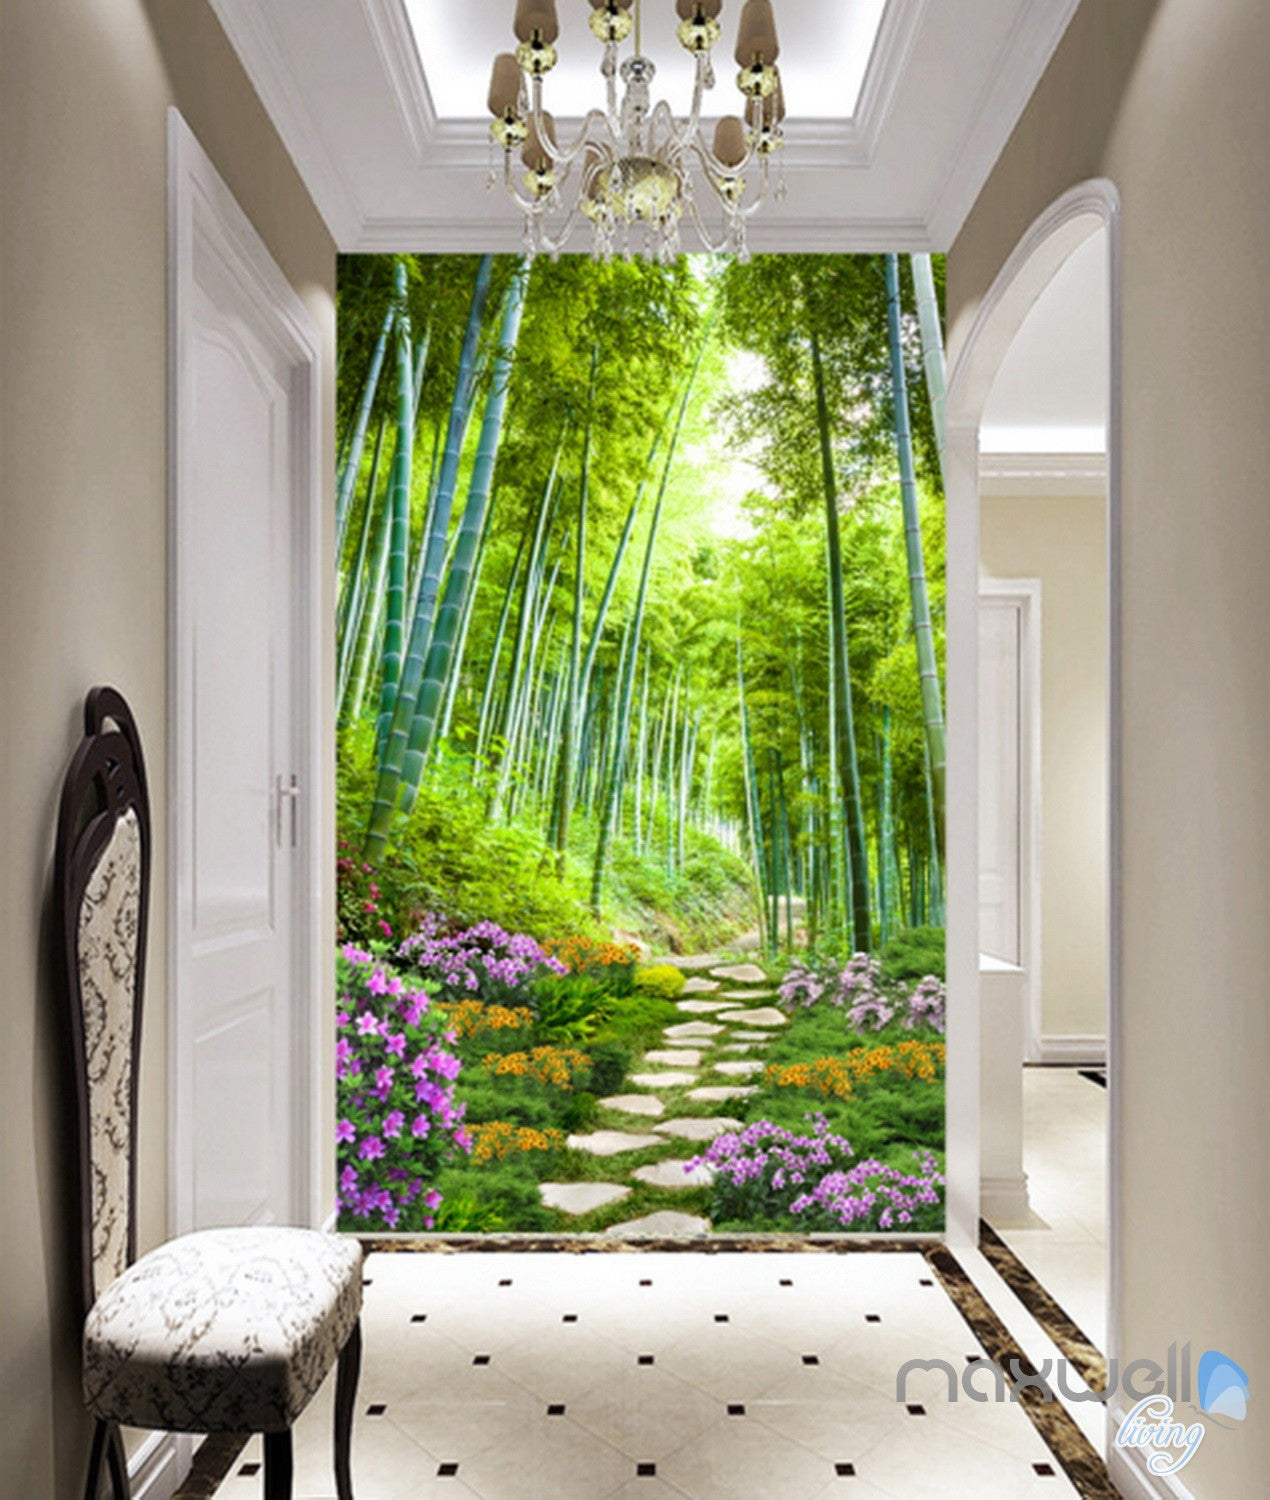 Design Wall Mural Decals 3d bamboo forest flower corridor entrance wall mural decals art print wallpaper 047